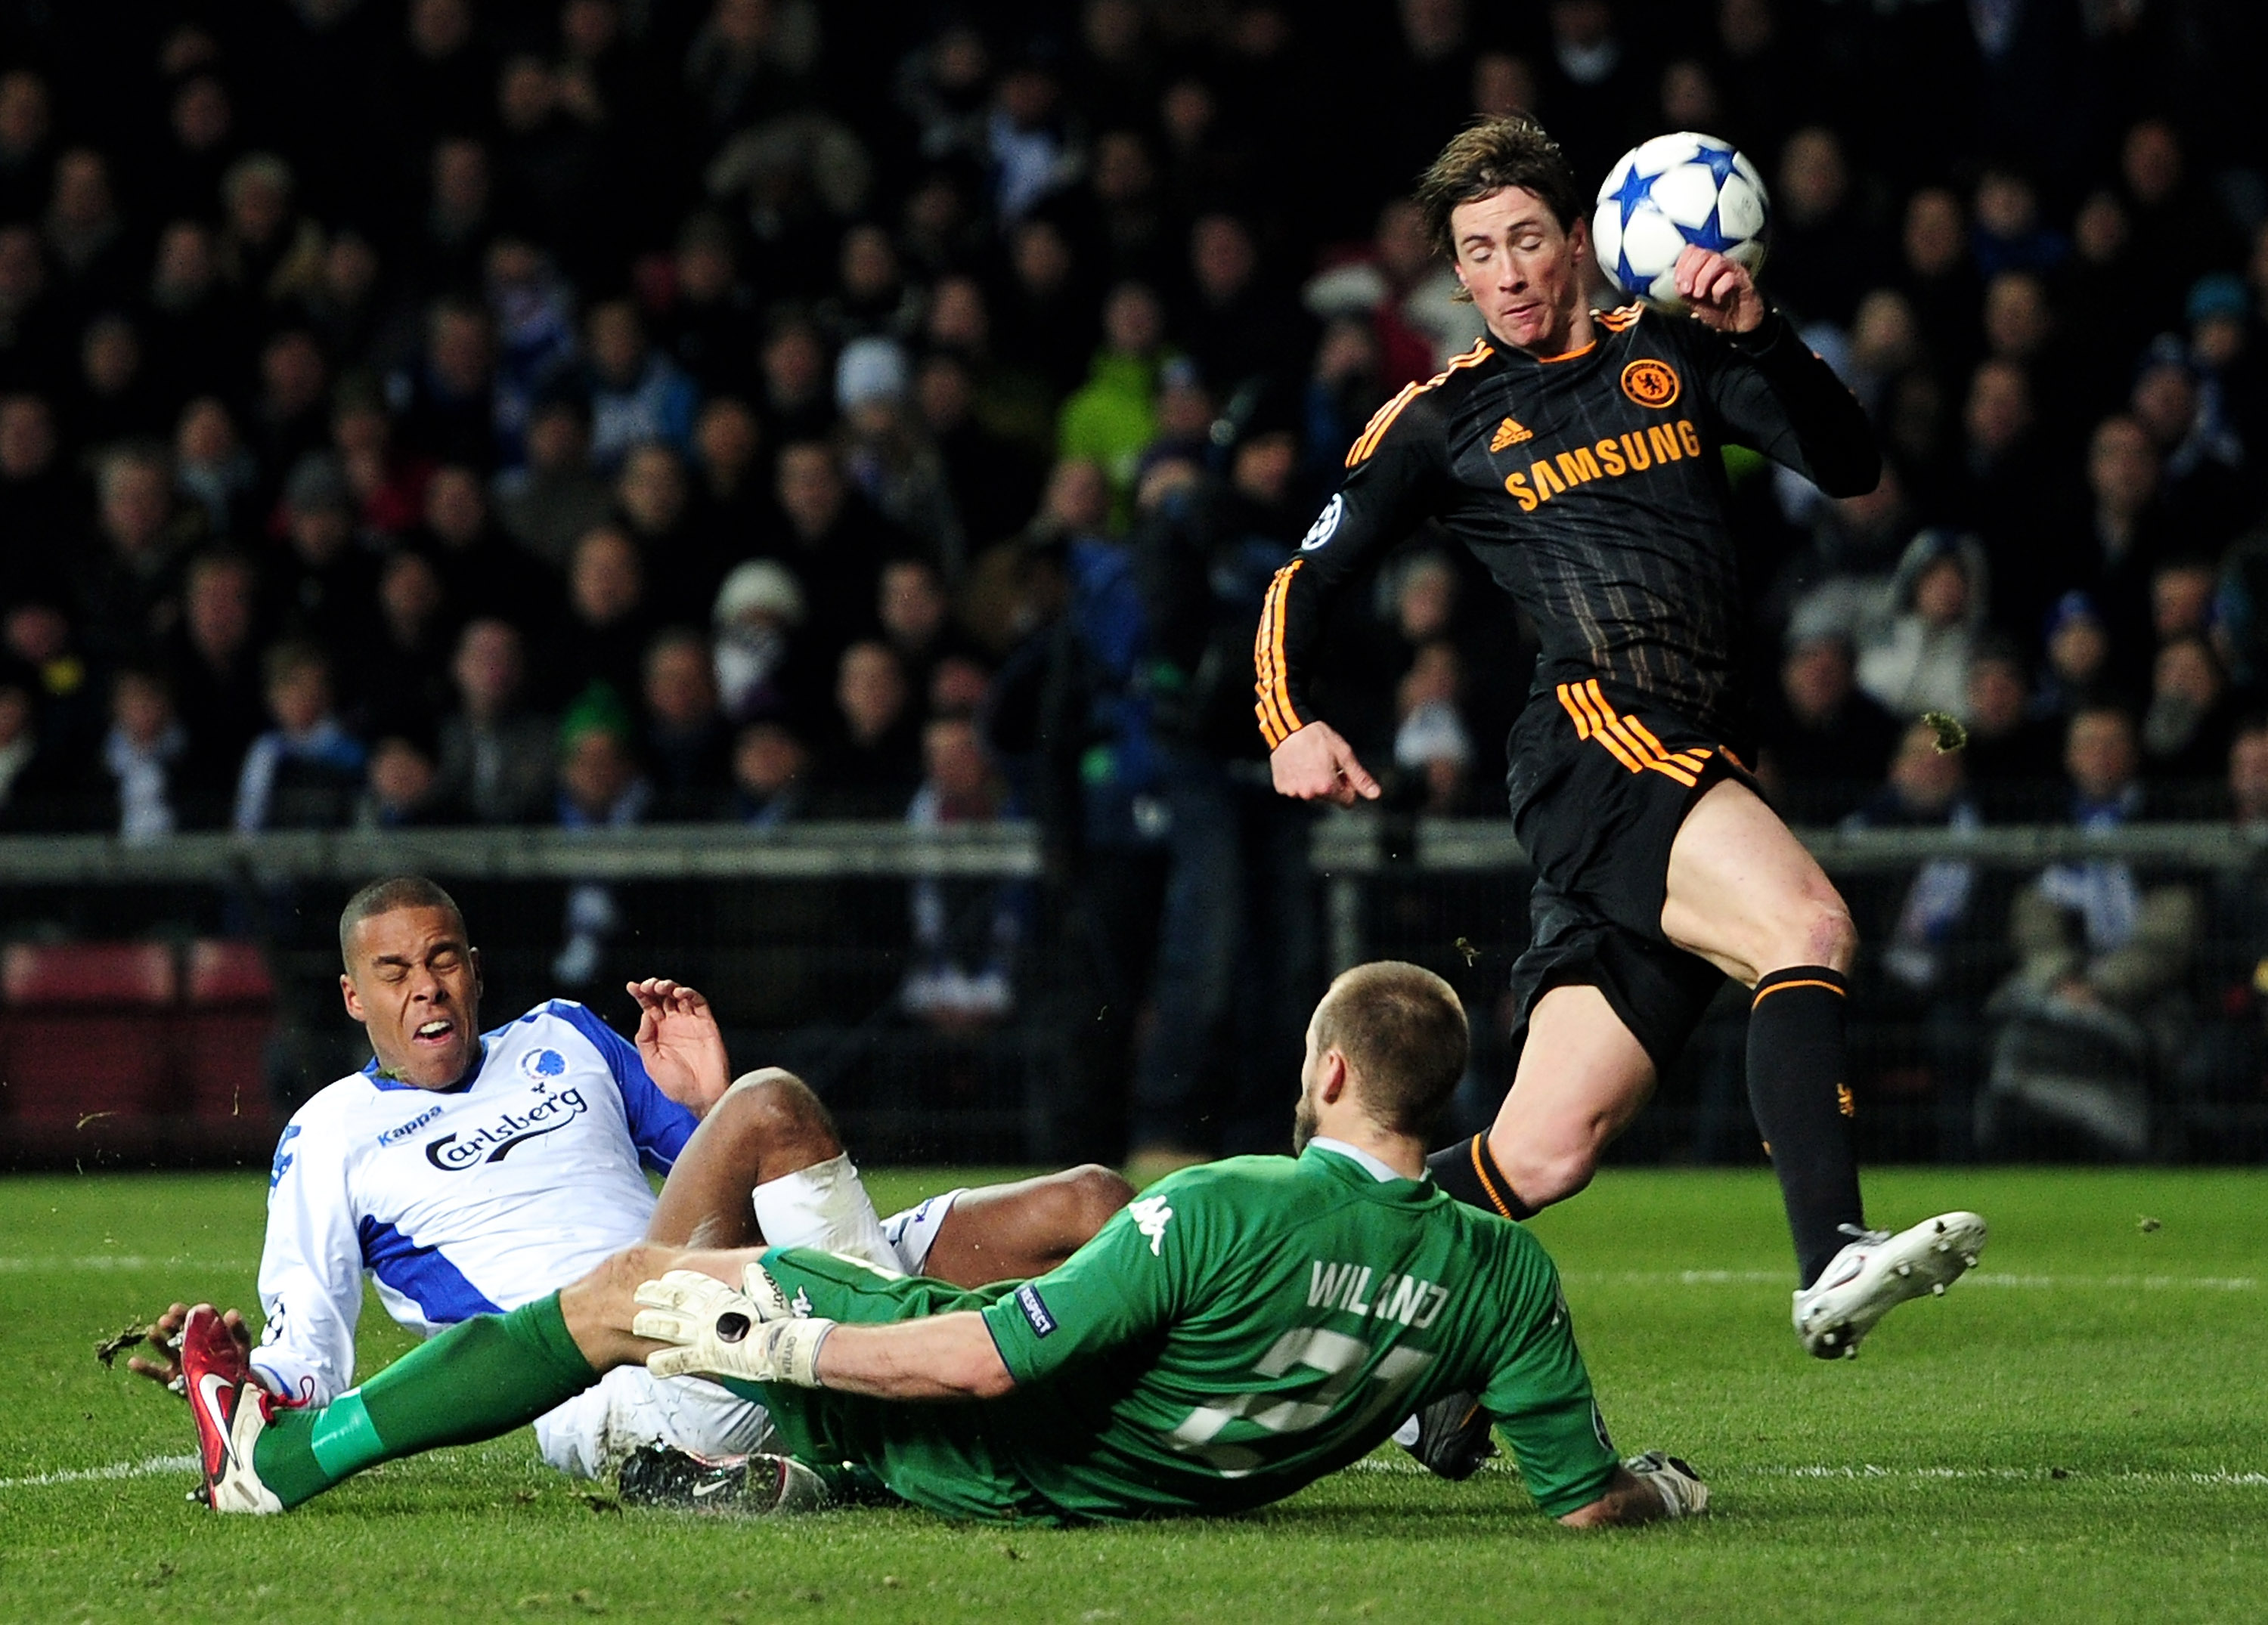 COPENHAGEN, DENMARK - FEBRUARY 22:  Fernando Torres of Chelsea is challenged by Mathias Zanka Jorgensen (L) and Johan Wiland of FC Copenhagen during  the UEFA Champions League round of 16 first leg match between FC Copenhagen and Chelsea at Parken Stadium